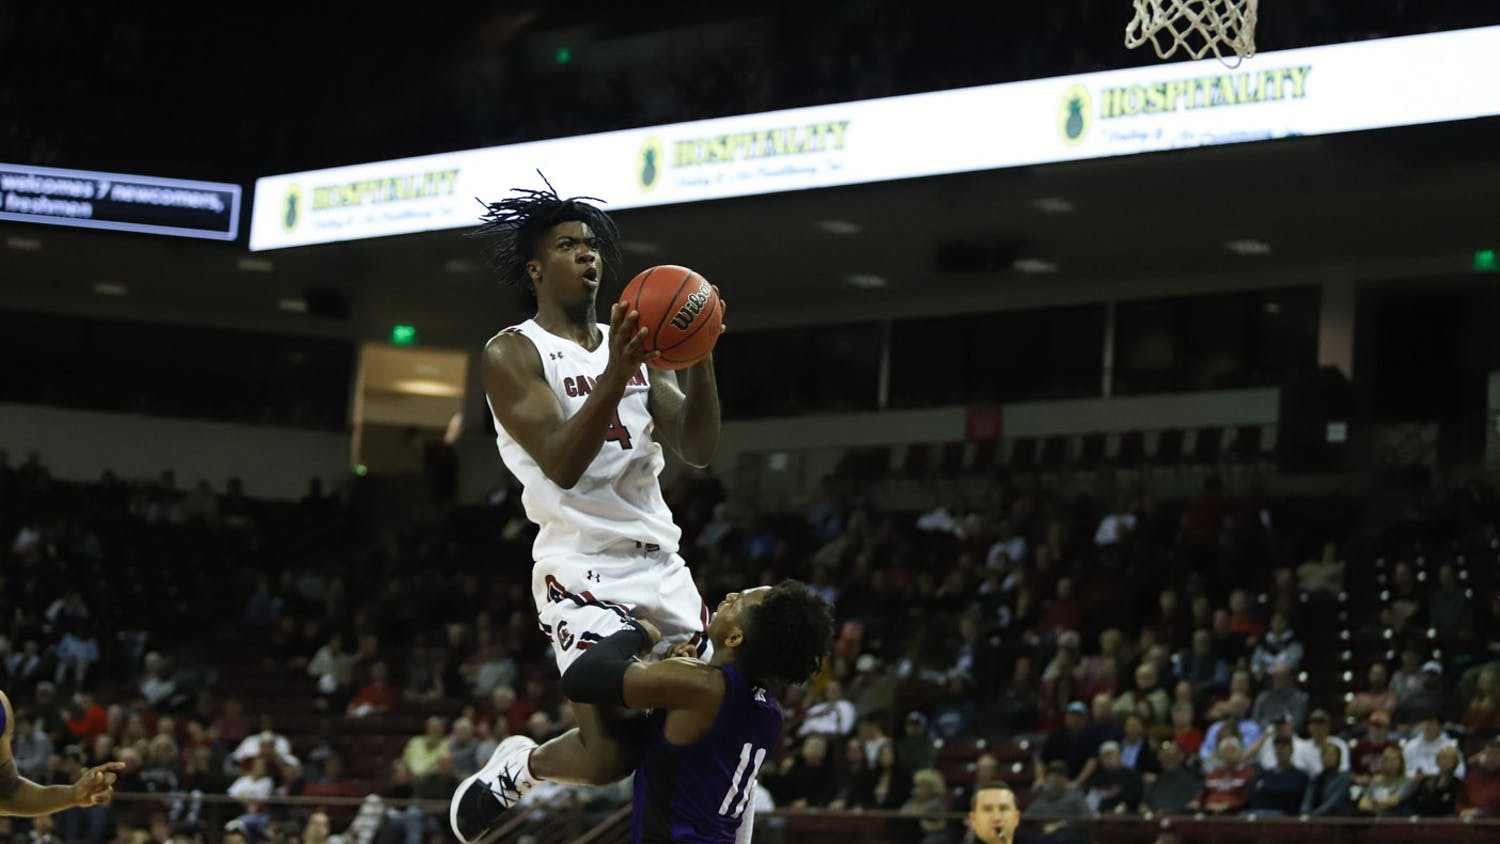 Freshman Jalyn Mccreary goes up for a layup in the Gamecocks game against North Alabama on Wednesday night. Mccreary scored 9 points in the Gamecocks 77-55 win in this game